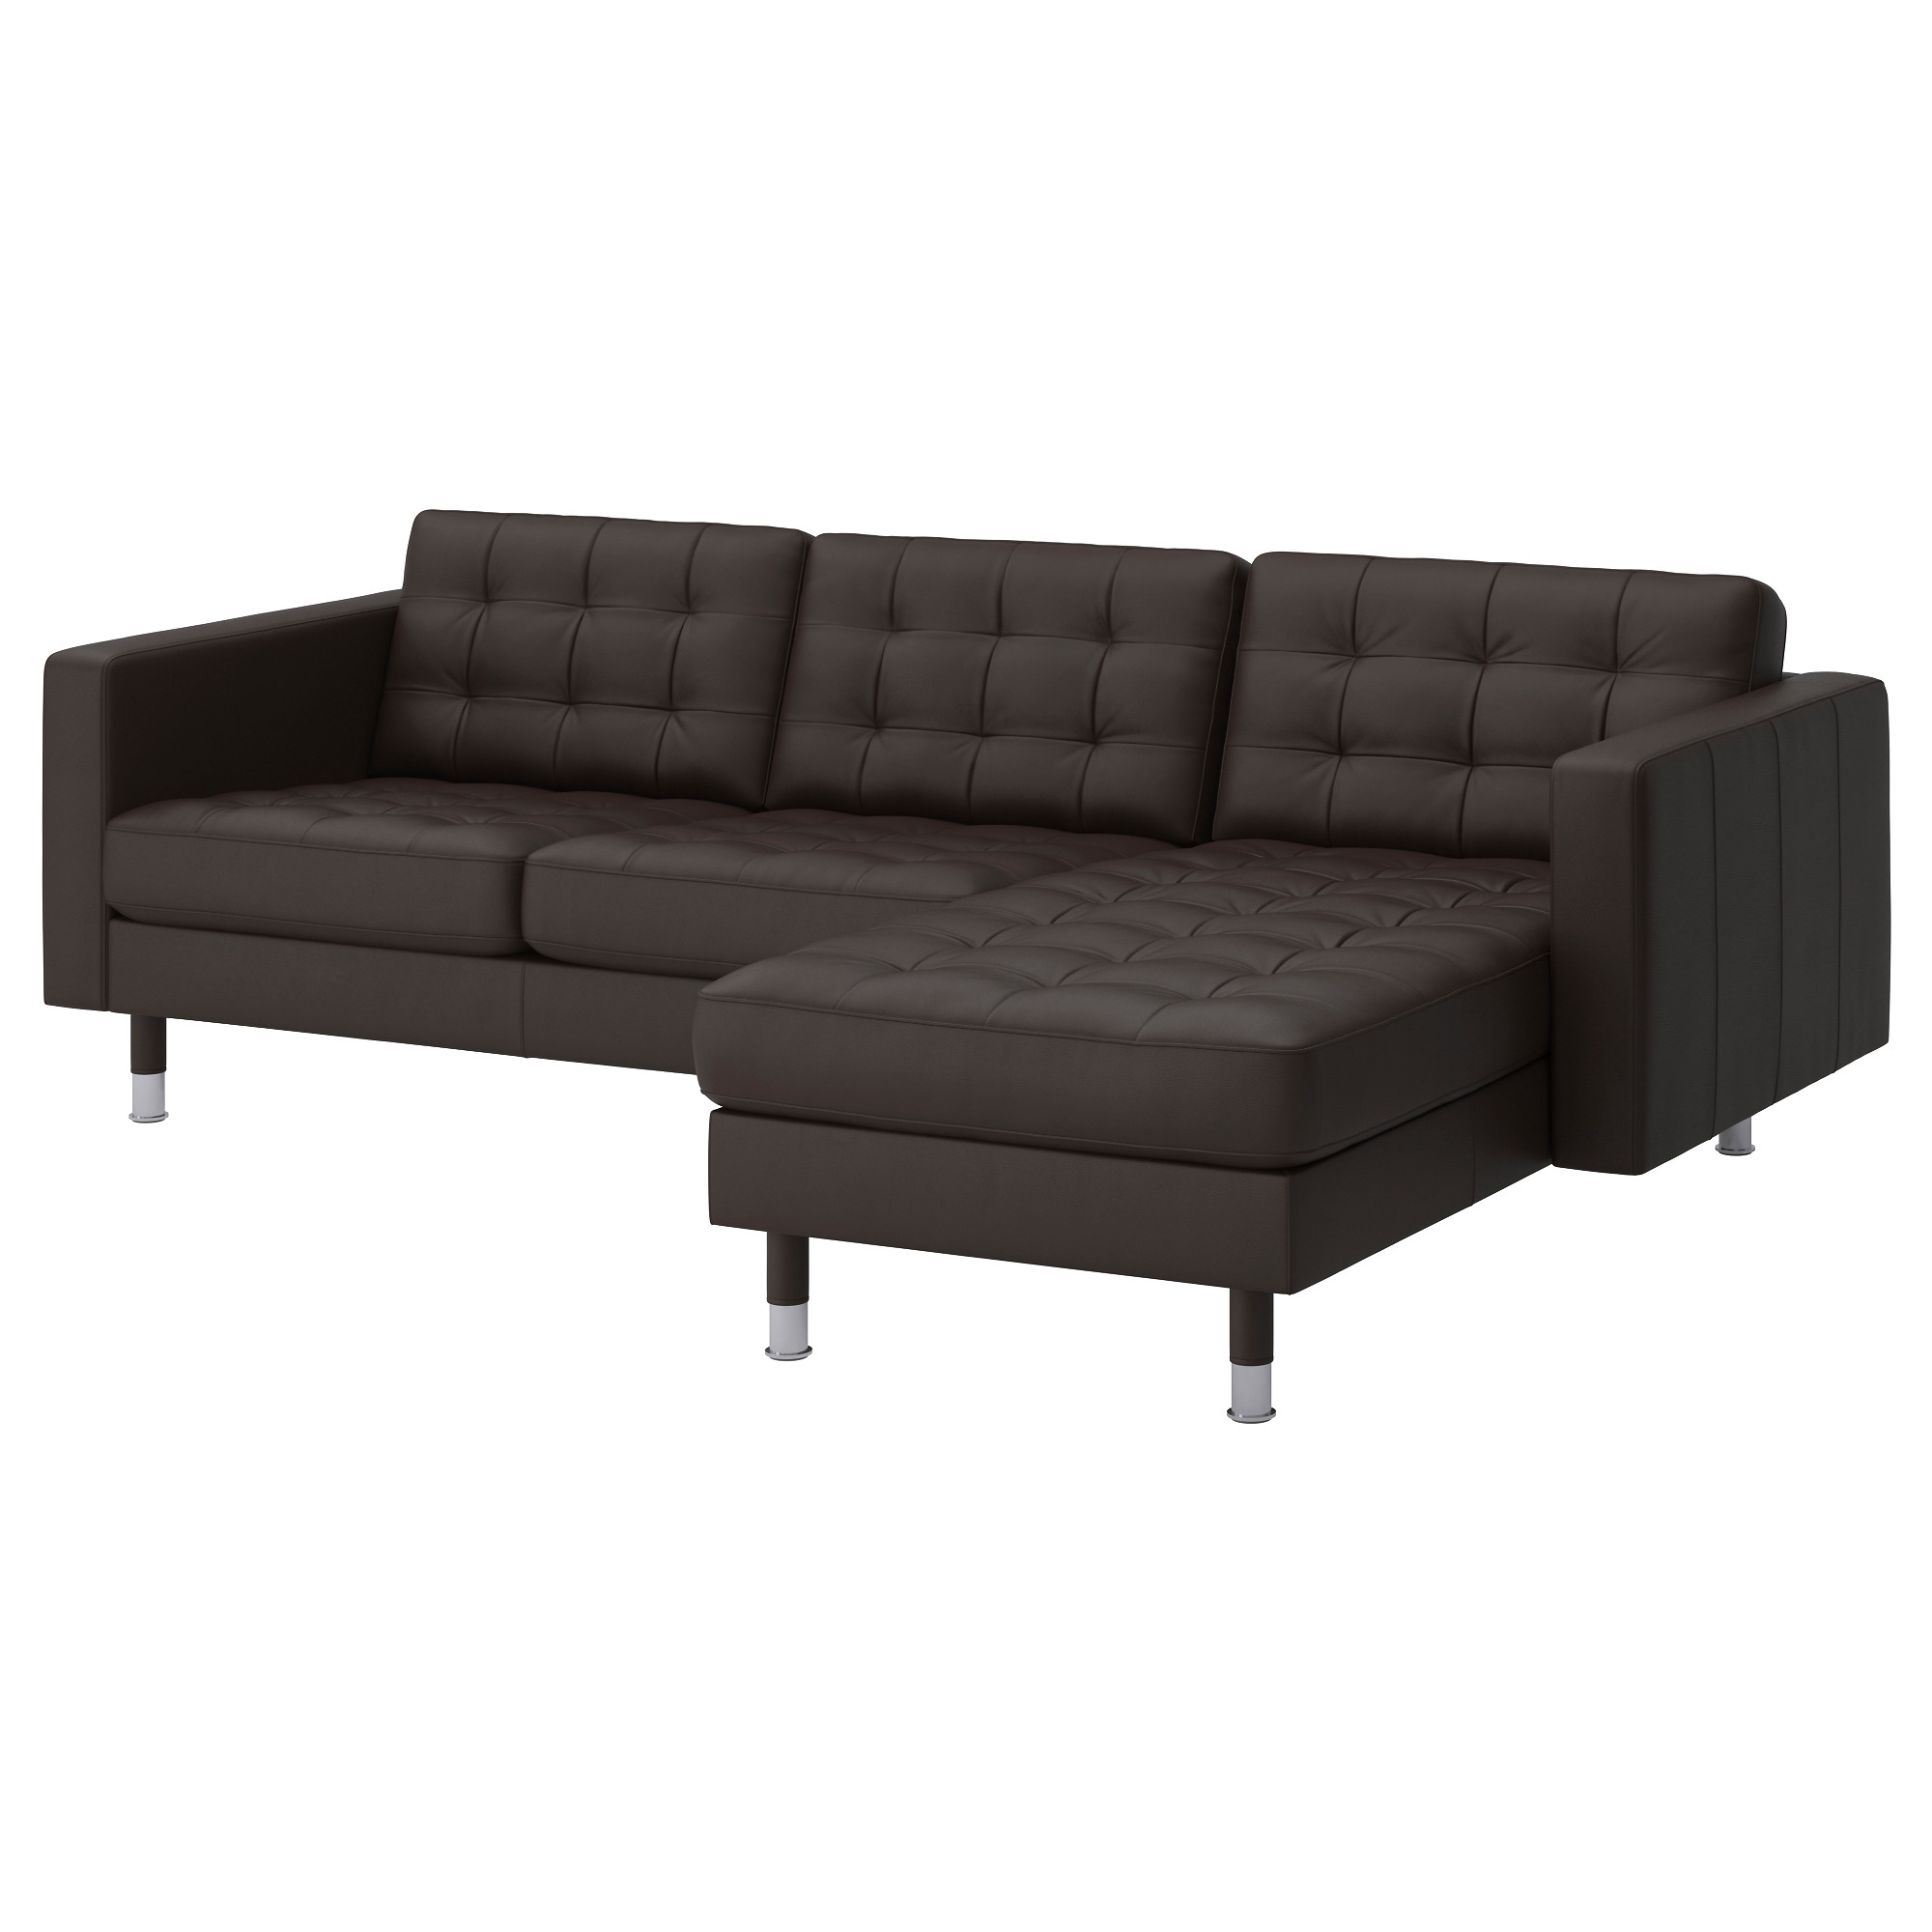 Ikea 4 Seater Sofa 15 Collection Of 4 Seat Leather Sofas | Sofa Ideas